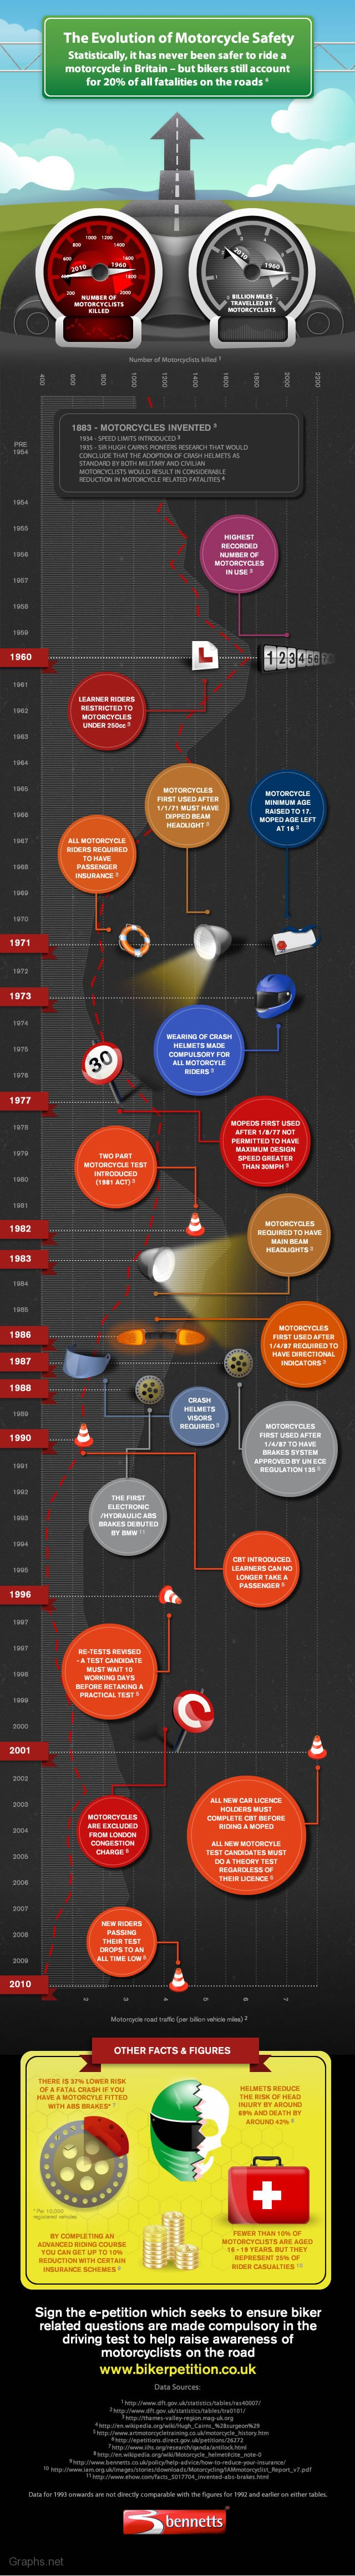 History of motorcycle safety